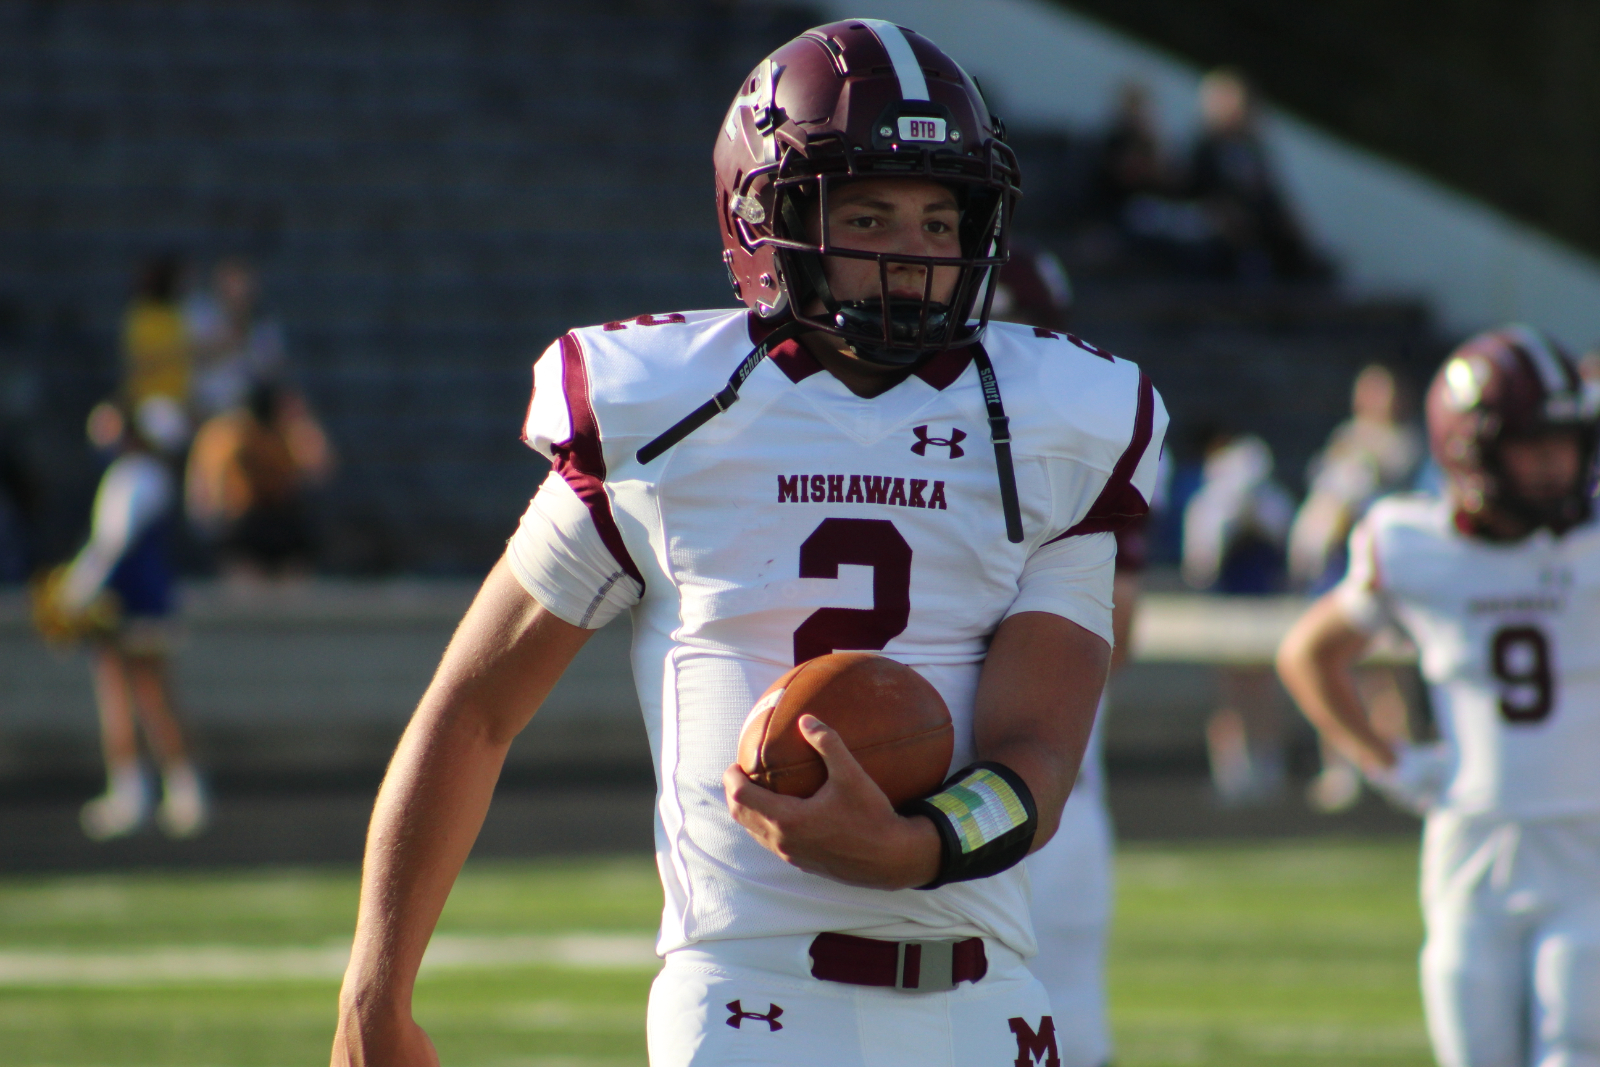 Mishawaka Football at Elkhart 8-28-20